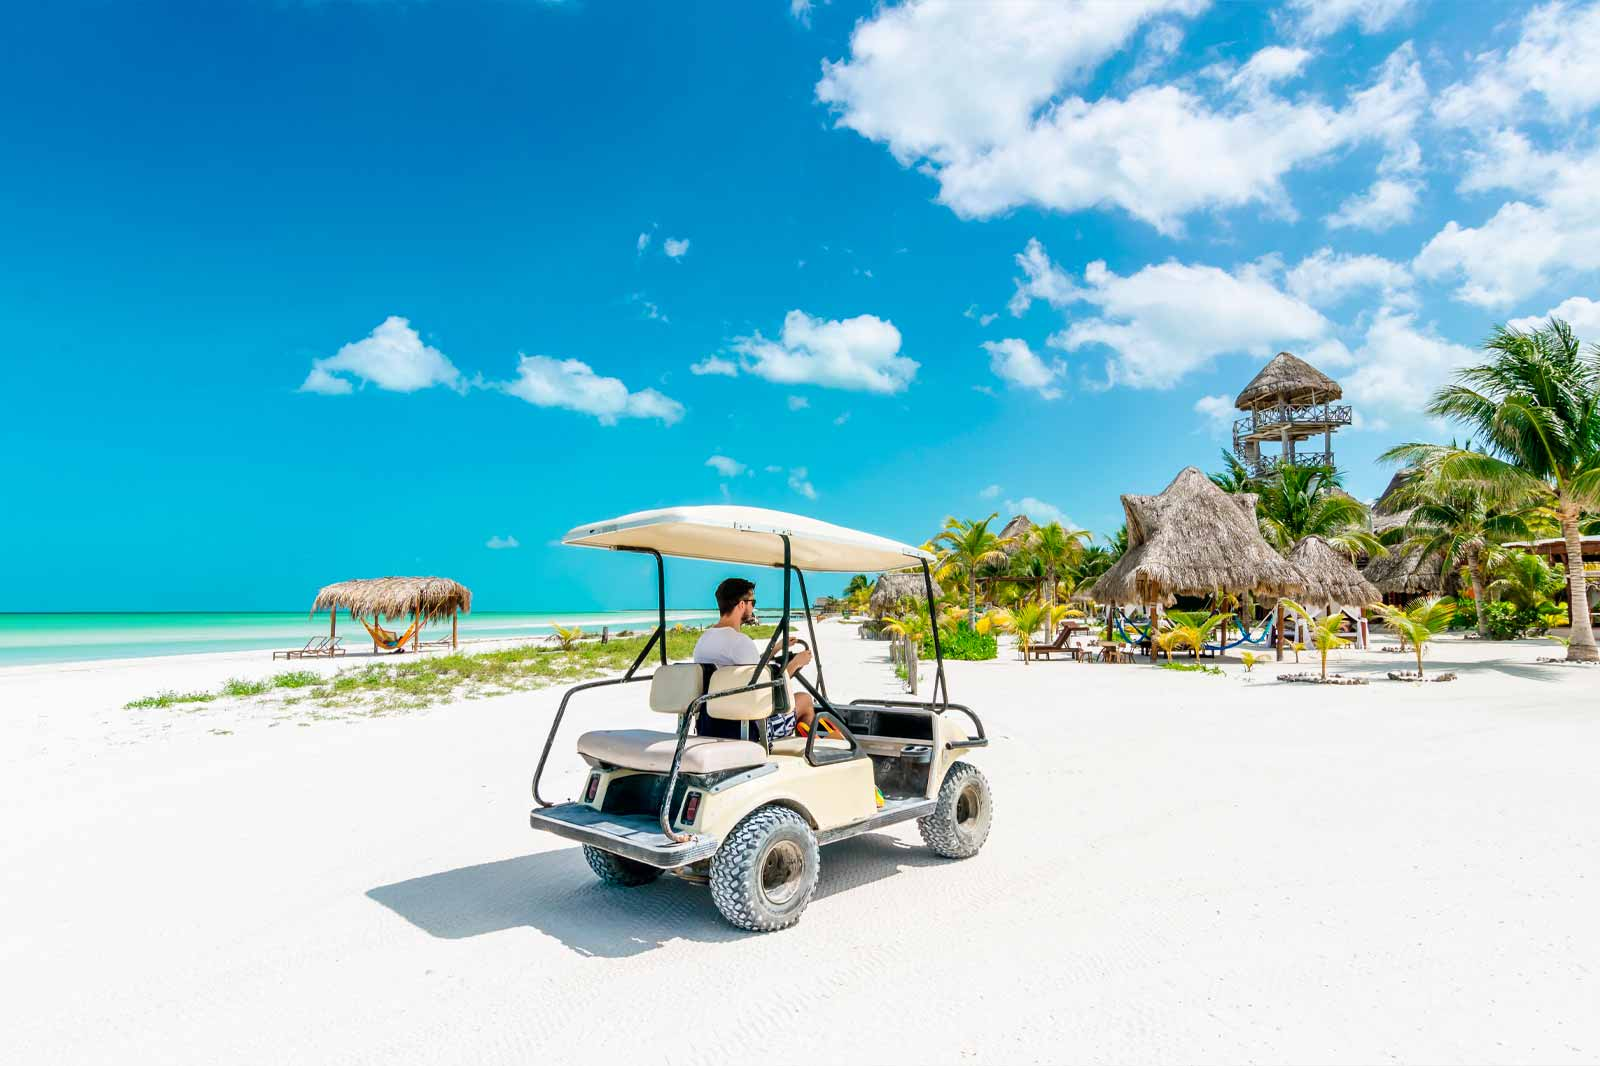 mexicofinder-travel-mexico-most-beautiful-islands-isla-holbox